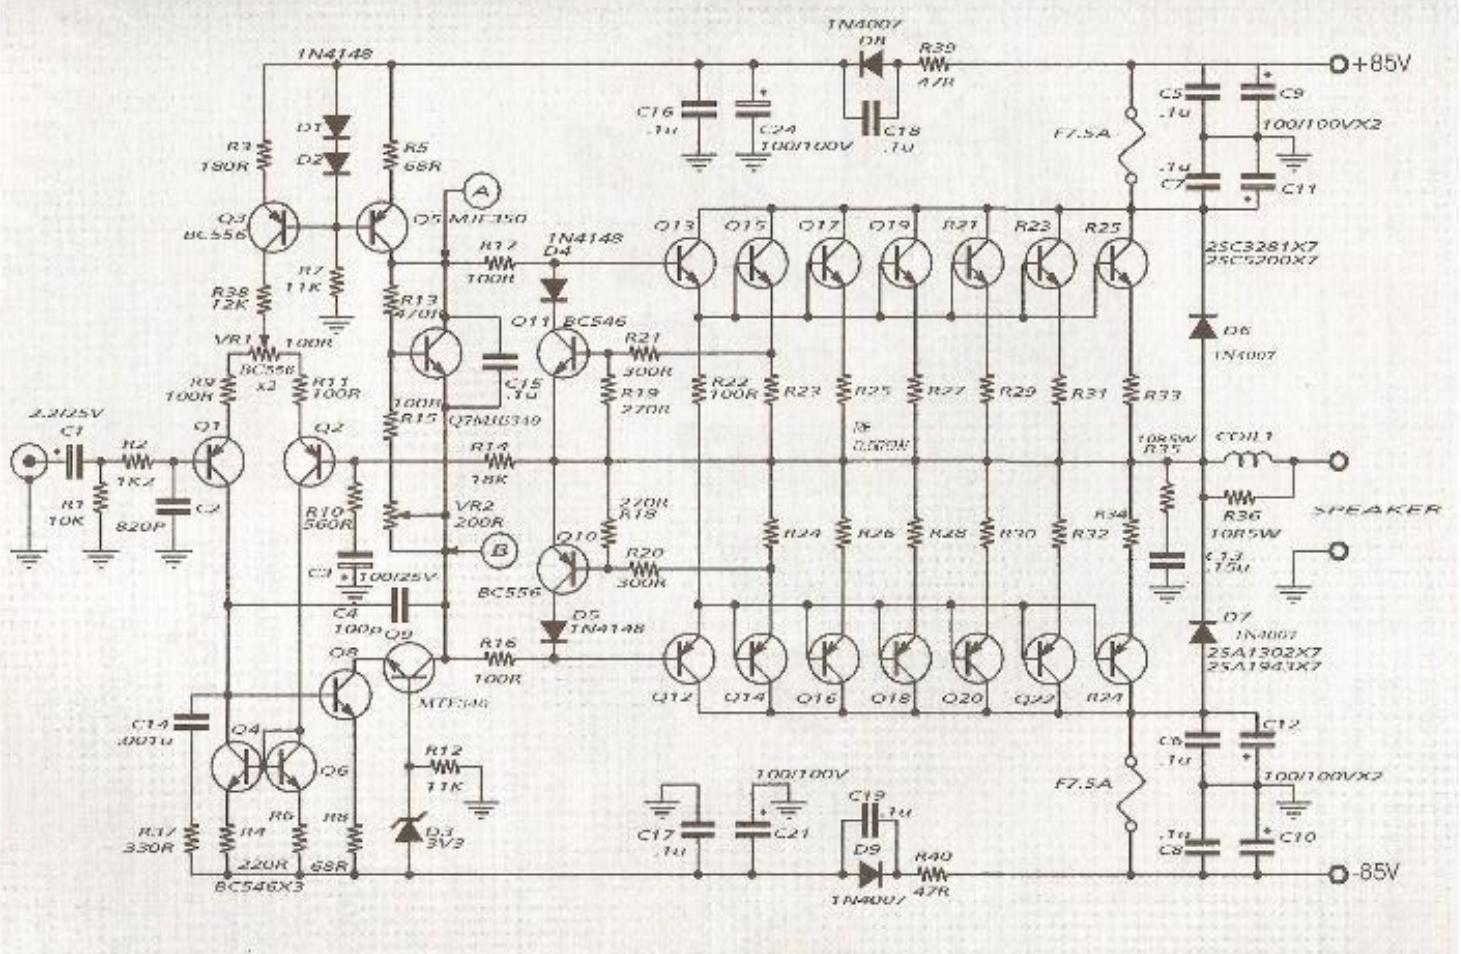 2000w Power Amplifier Circuit Diagram Winch Rocker Switch Wiring 600w Audio With 2sc5200 2sa1943 And Pcb